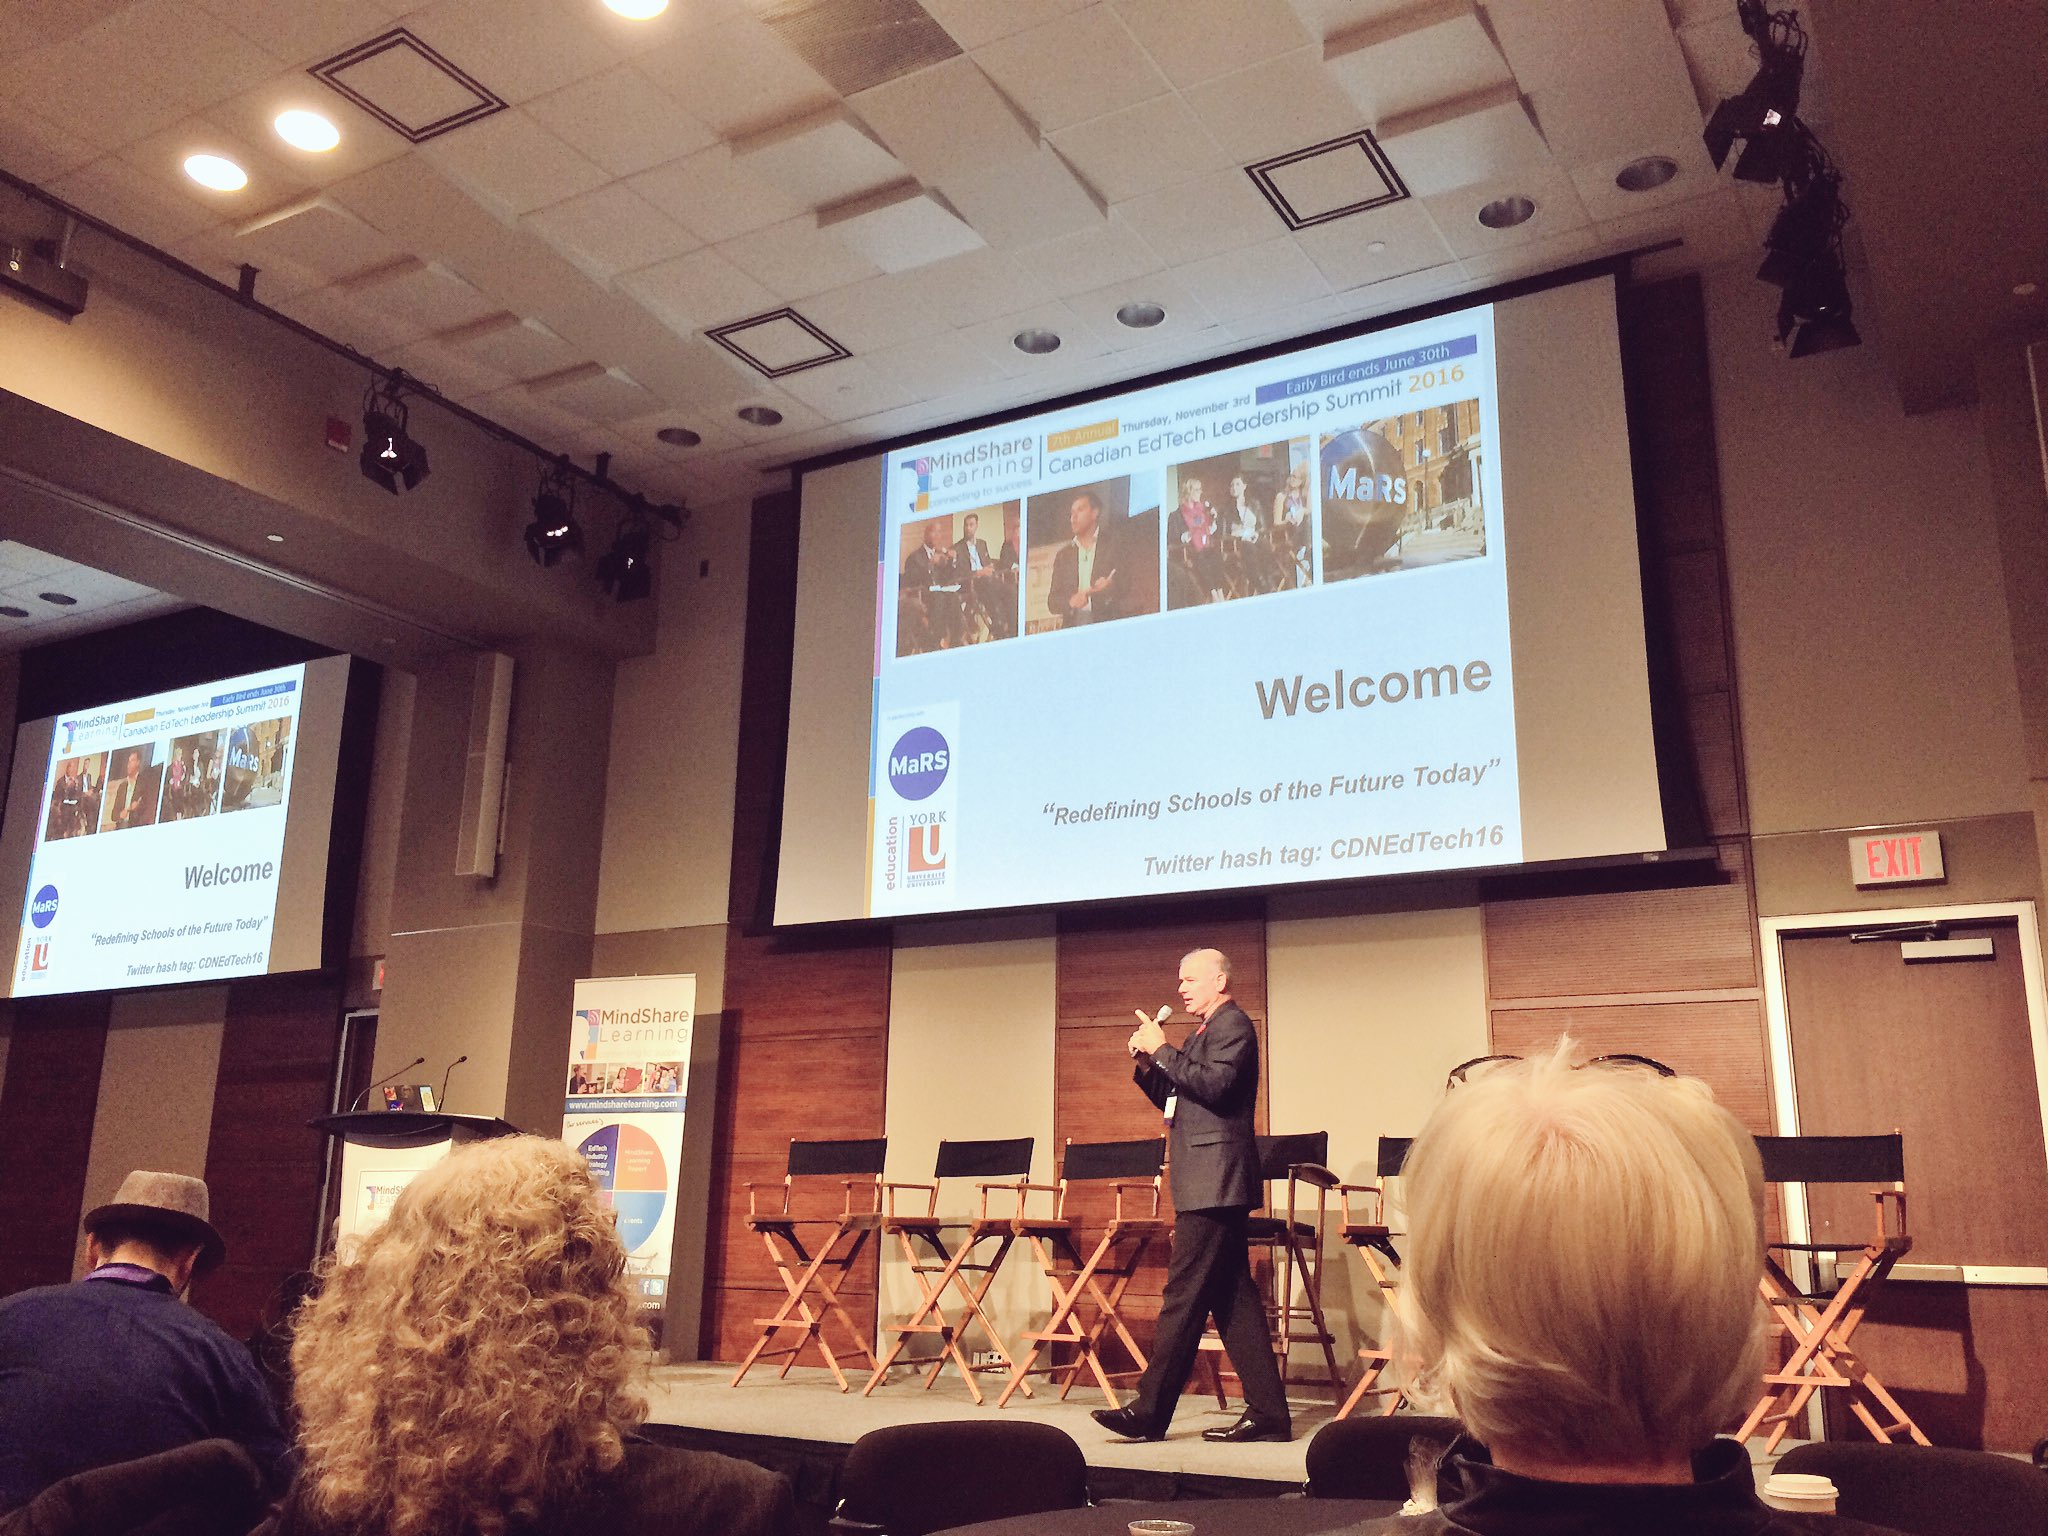 We're at #cdnedtech16 for the Canadian Edtech Leadership Summit & excited to be pitching today! https://t.co/ZhKuubfqH4